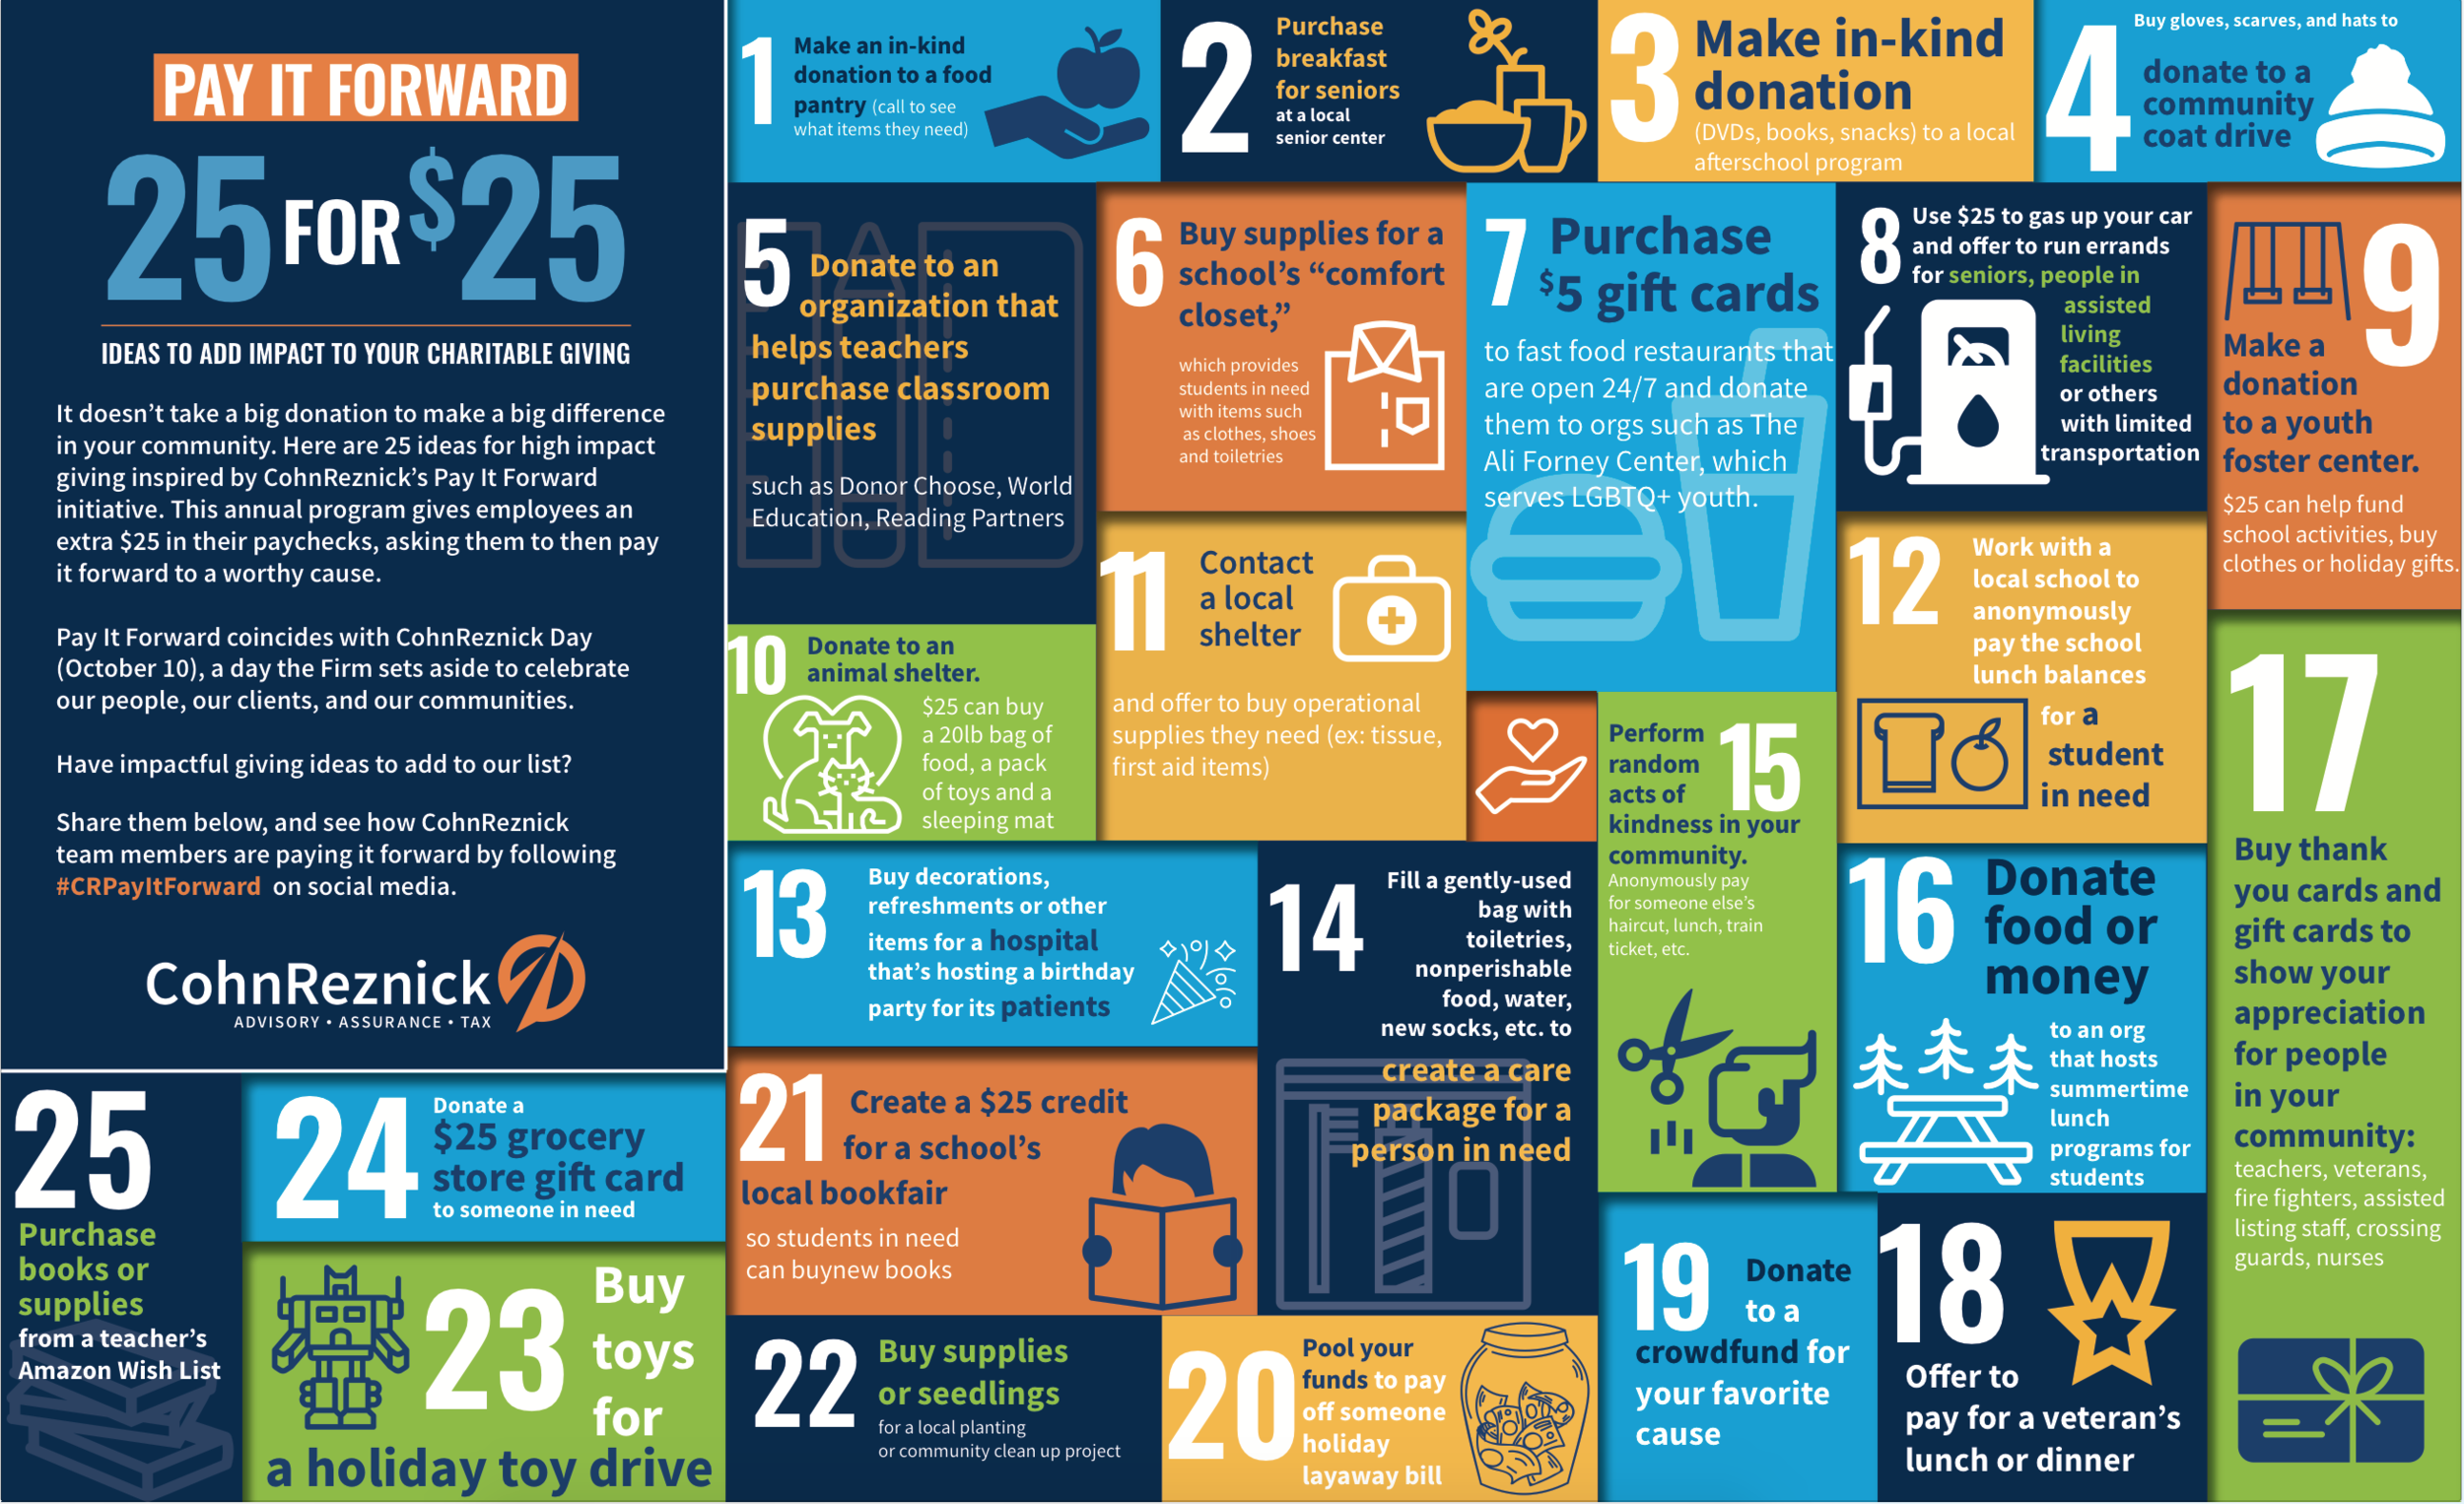 25 Ways to Pay It Forward - Info-Graphic Version 2